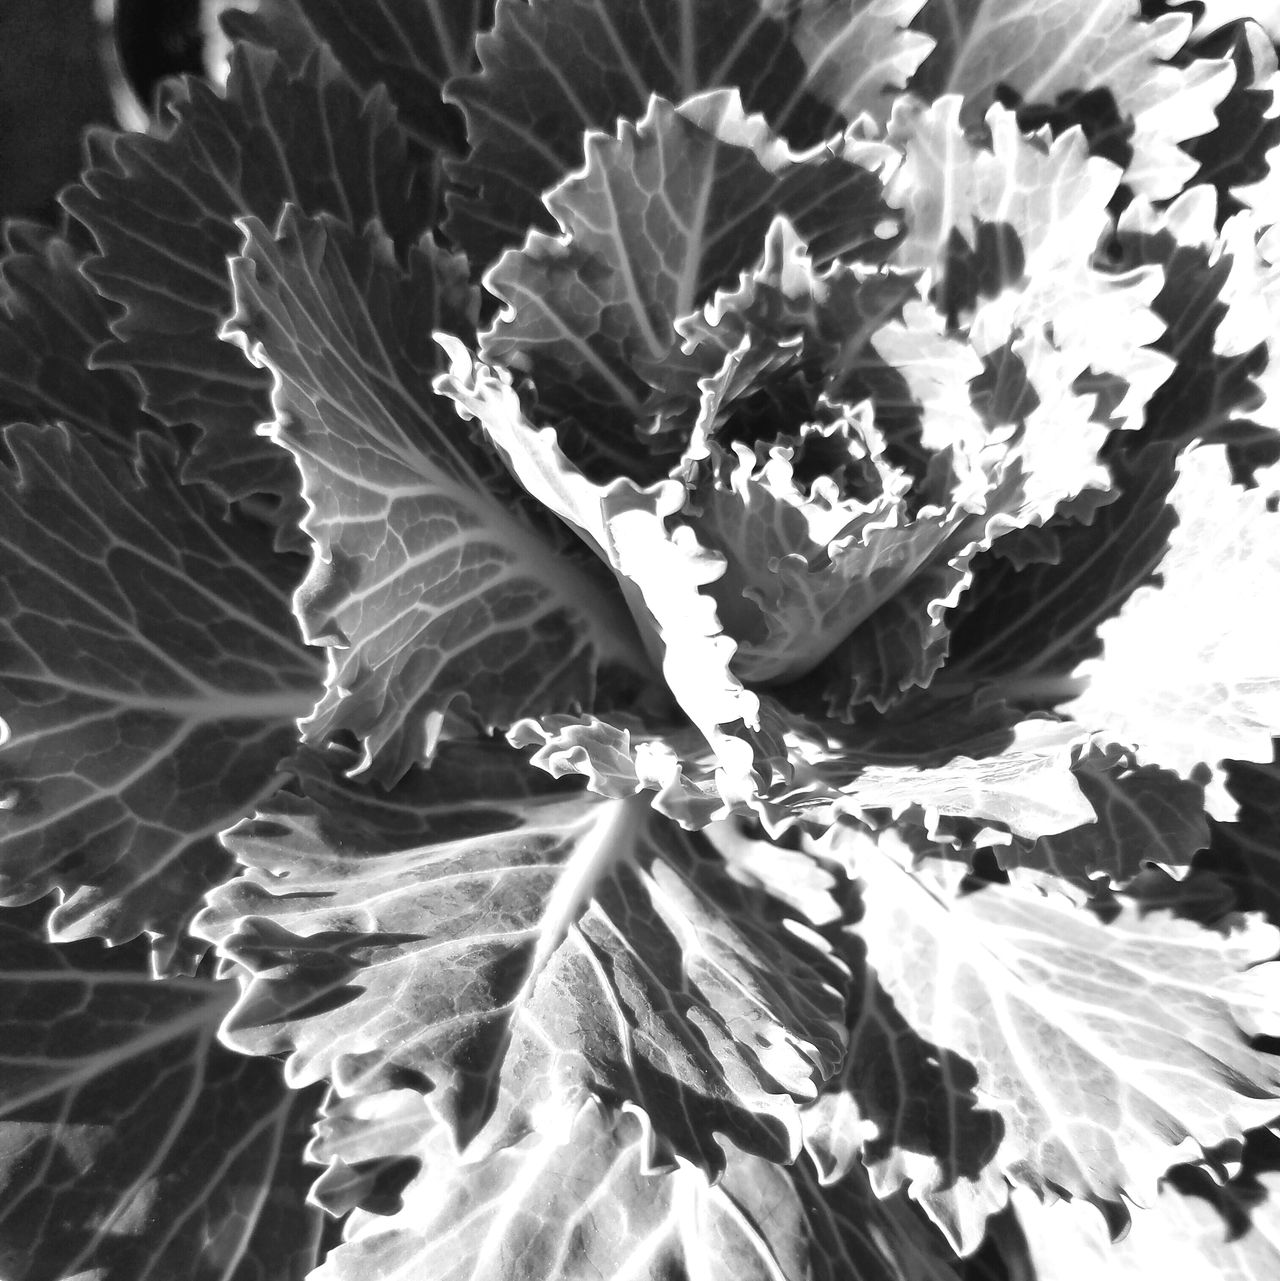 DECO EDIBLE Monochrome Photography Growth Plant Leaf Close-up Nature Natural Pattern Beauty In Nature Botany Selective Focus Freshness Plant Life Tranquility Outdoors Fragility Full Frame Day Frond Leaves Scenics Softness MUR B&W